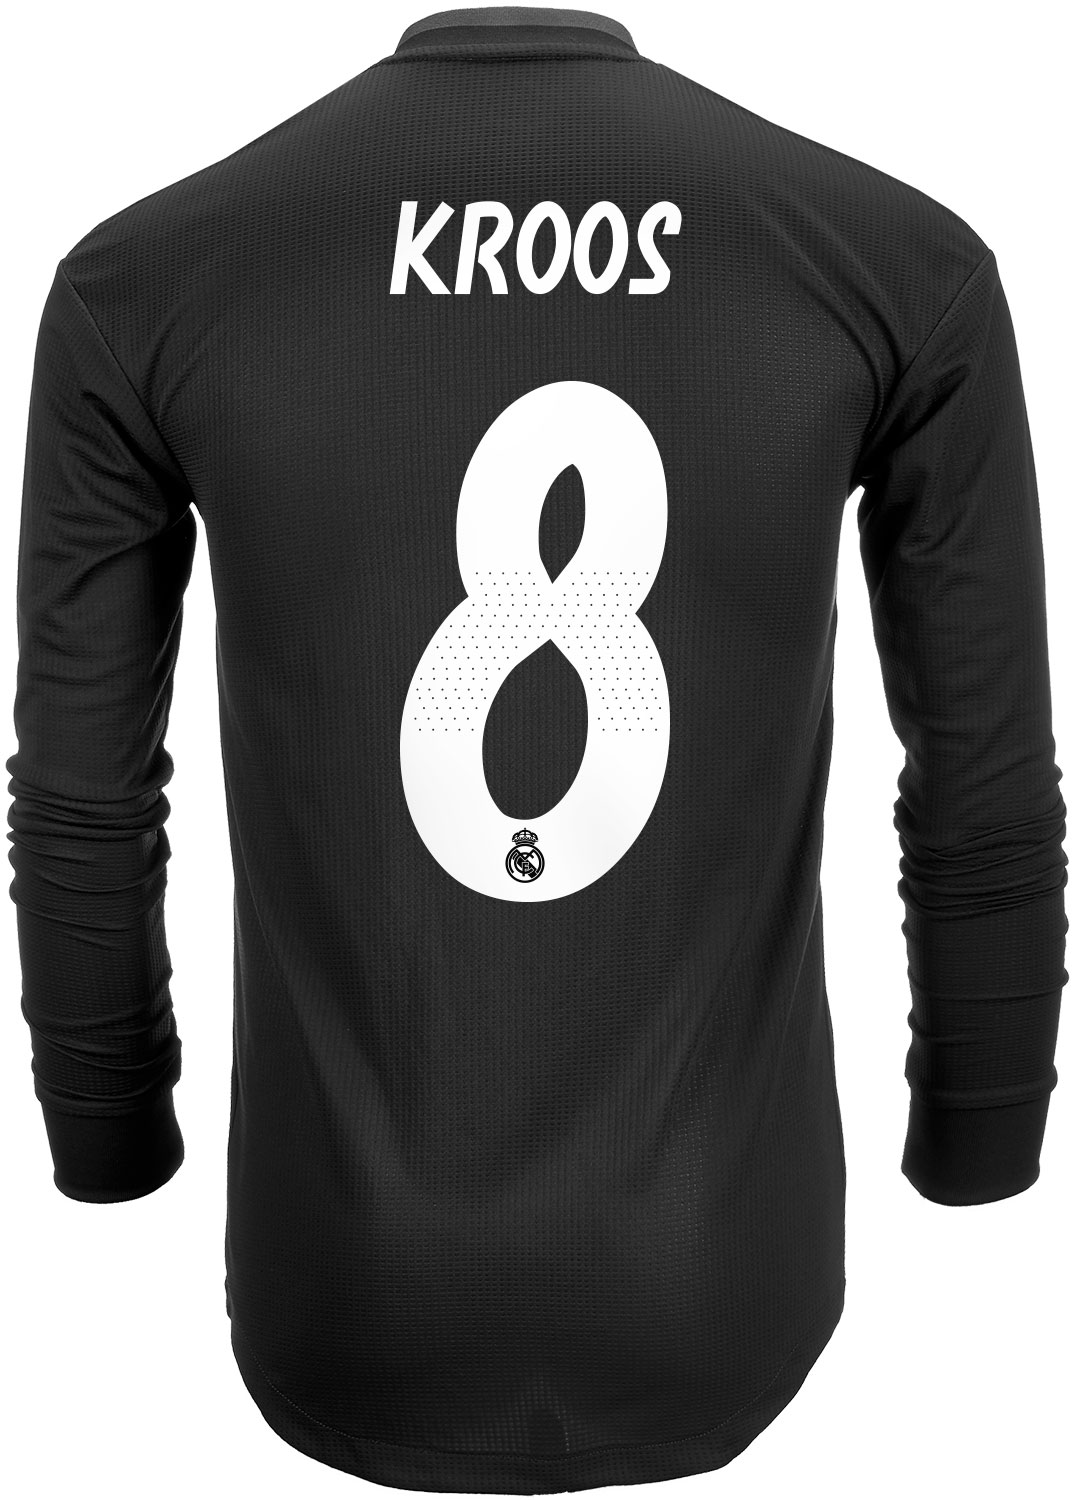 275379cf 2018/19 adidas Toni Kroos Real Madrid Authentic L/S Away Jersey ...